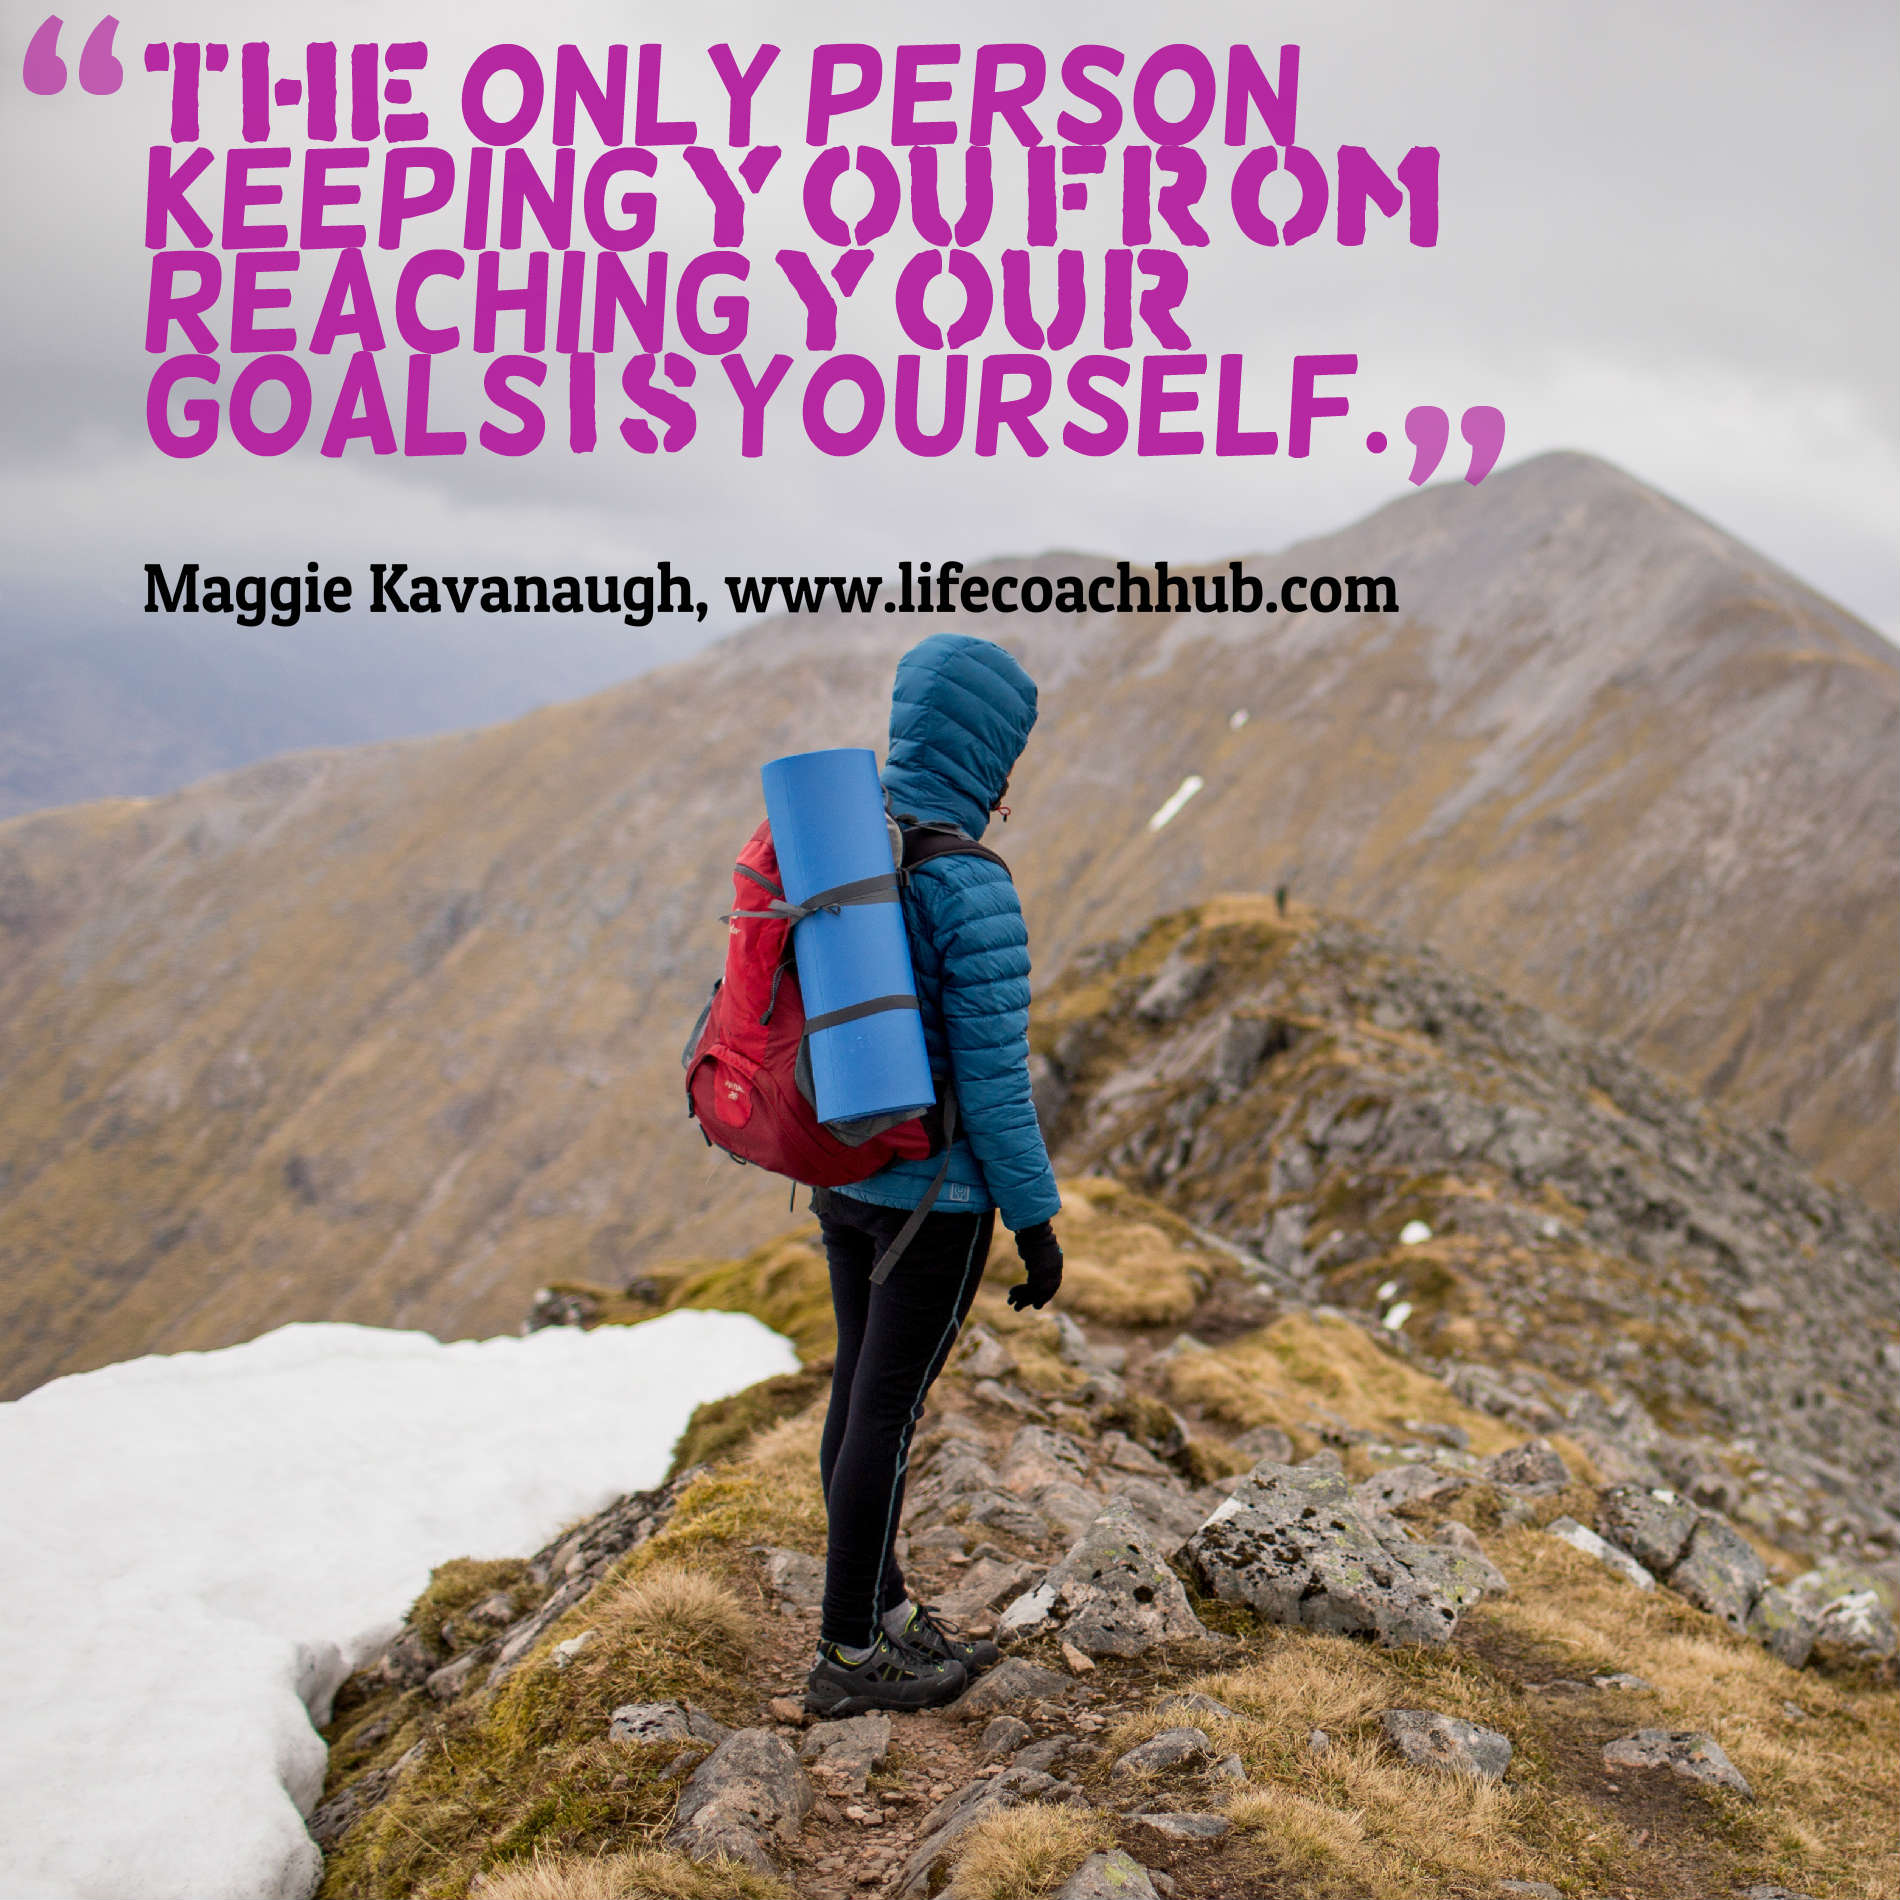 The only person keeping you from reaching your goals is yourself